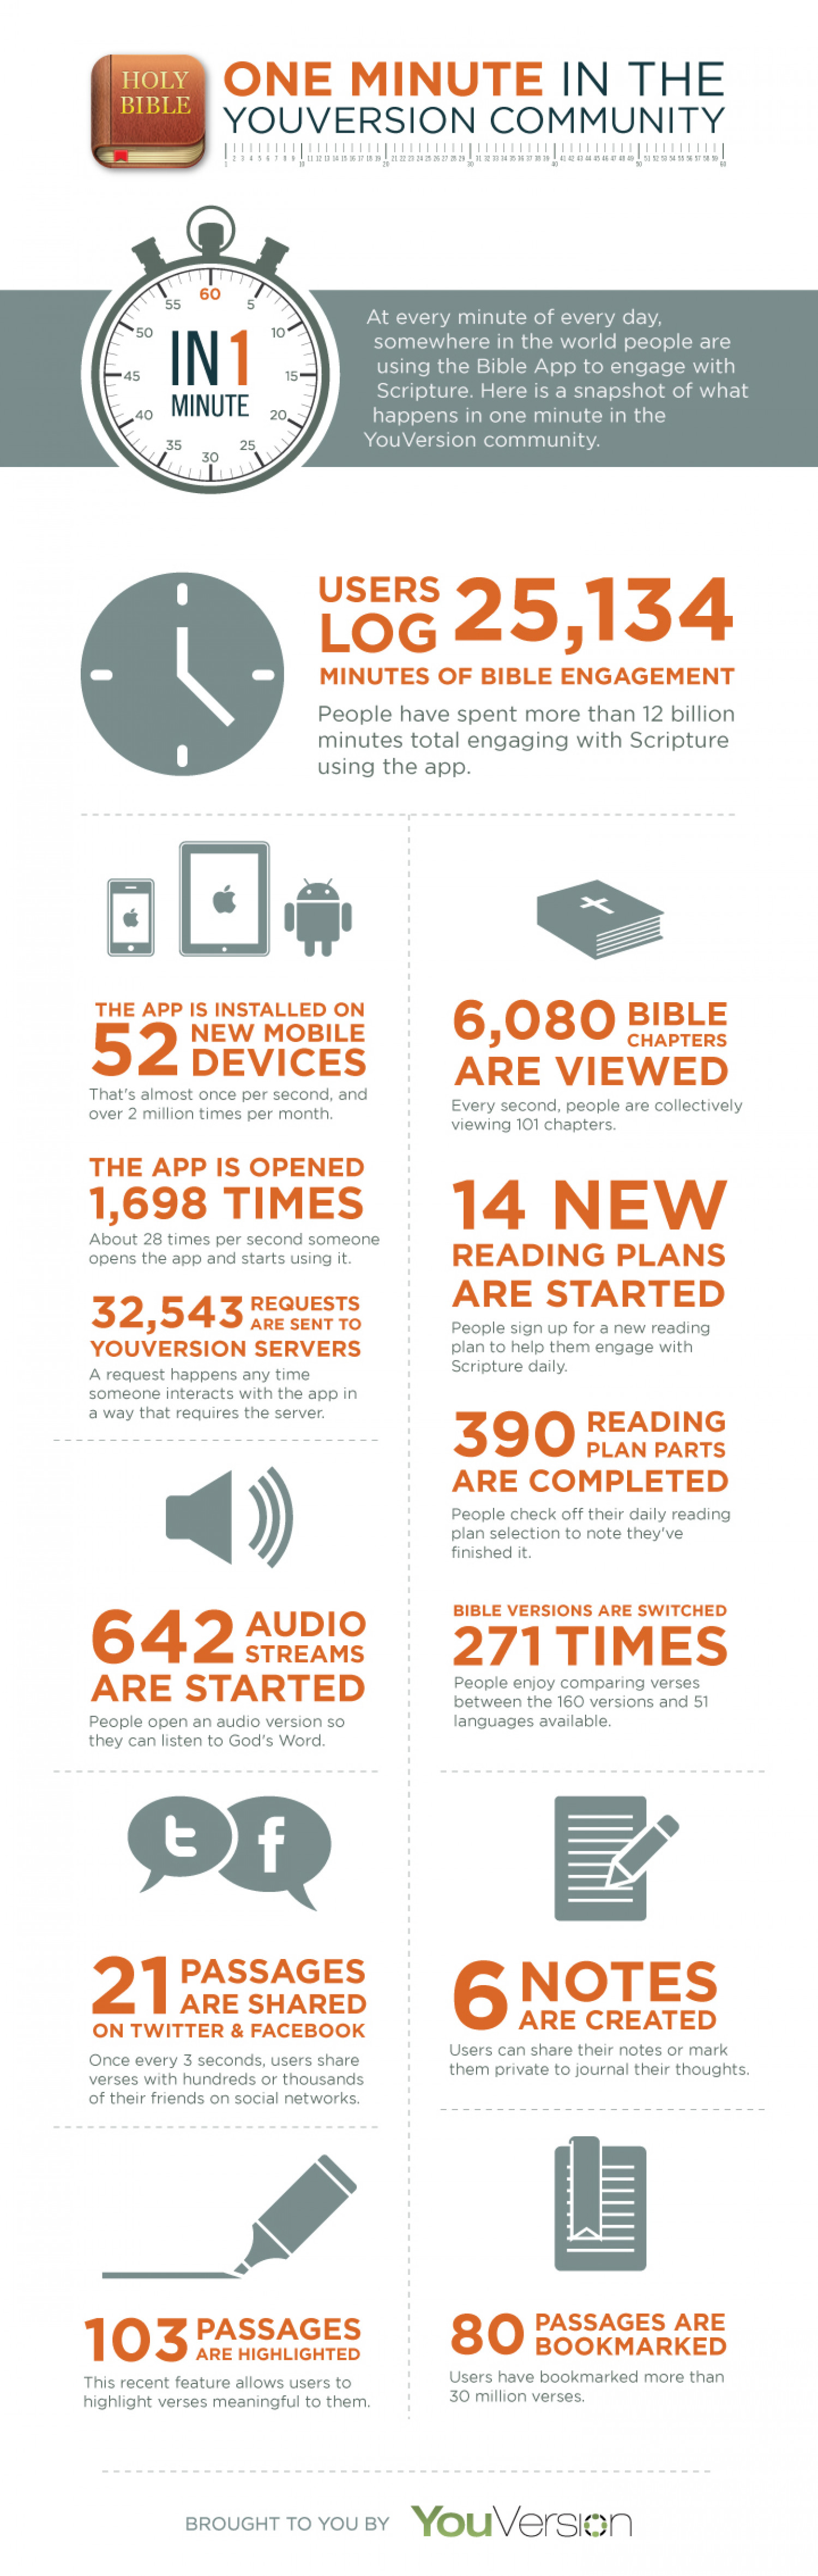 One Minute in the Youversion Community Infographic